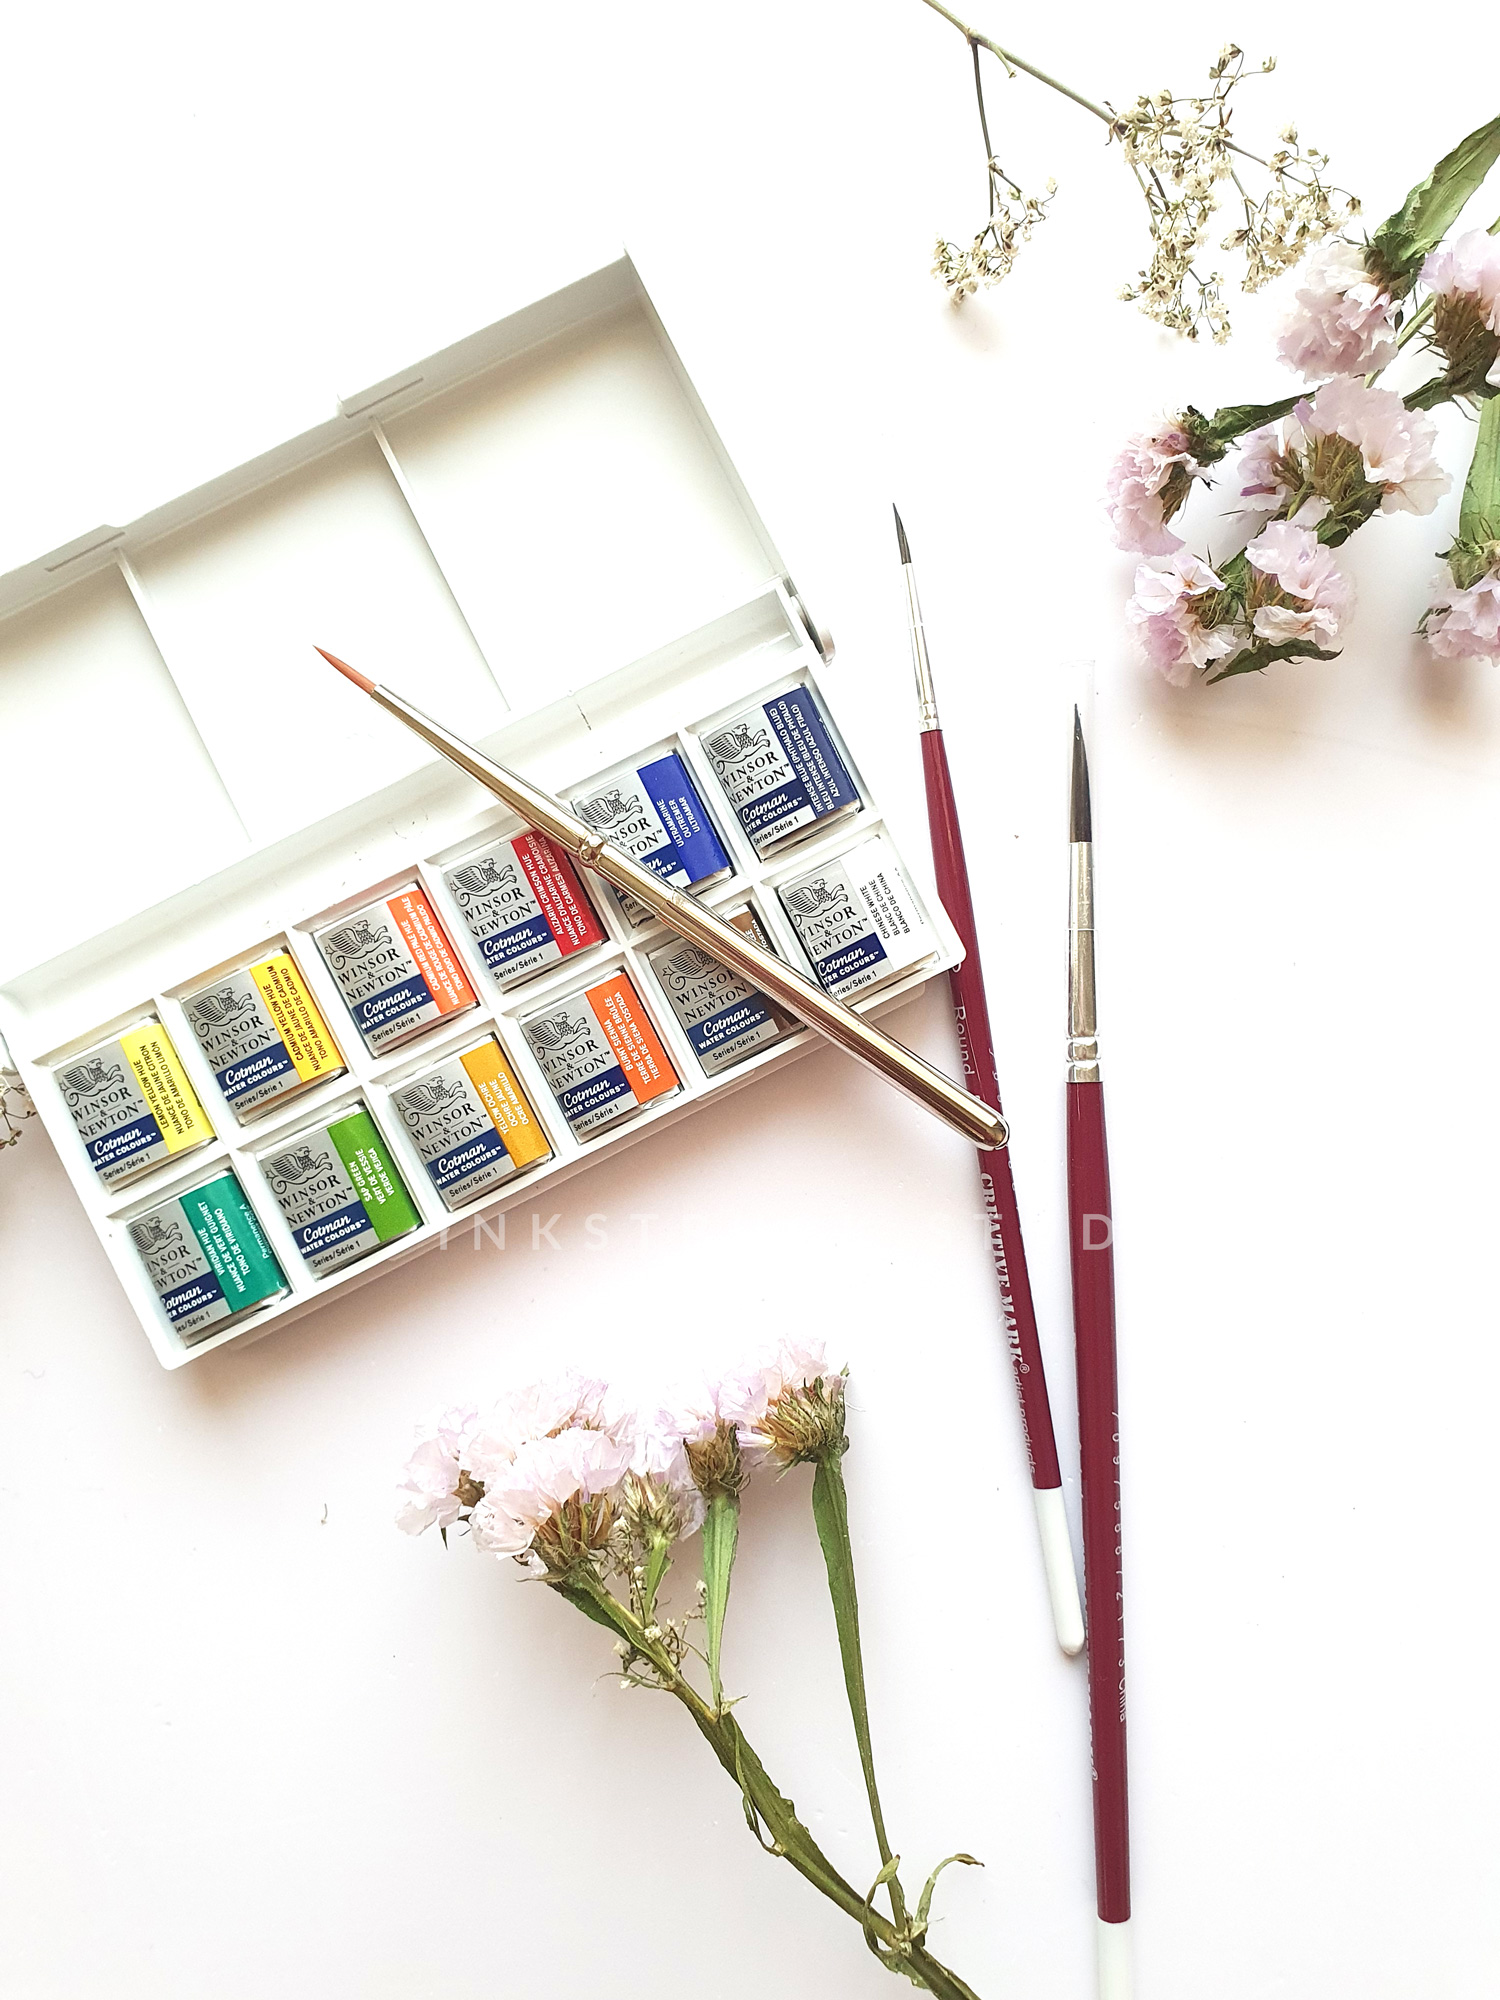 "Beginner watercolor supplies to kickstart your watercolor journey. It is a comprehensive kit that includes the materials required for an absolute beginner in watercolors. Free delivery available within Doha city limits. Delivery will be extra if the location is outside city limits. Pick up option available as well. International shipping is not available during this time.             Kit includes - Winsor and Newton Cotman half pan pocket-sized set of 12 includes a travel brush as well Langton Prestige 12""x0"" 100% cotton watercolor paper pad Palette (not pictured but is included) Creative hands watercolor brush round size 6 and detail size 3/0 ""Watercolor butterflies made easy "" e-book Watercolor florals workshop only copy e-book Express Paypal option available on this page. Upon checkout, you will have the options of Card payment, Bank transfer, and Paypal as well. Please choose your preferred payment and delivery option."